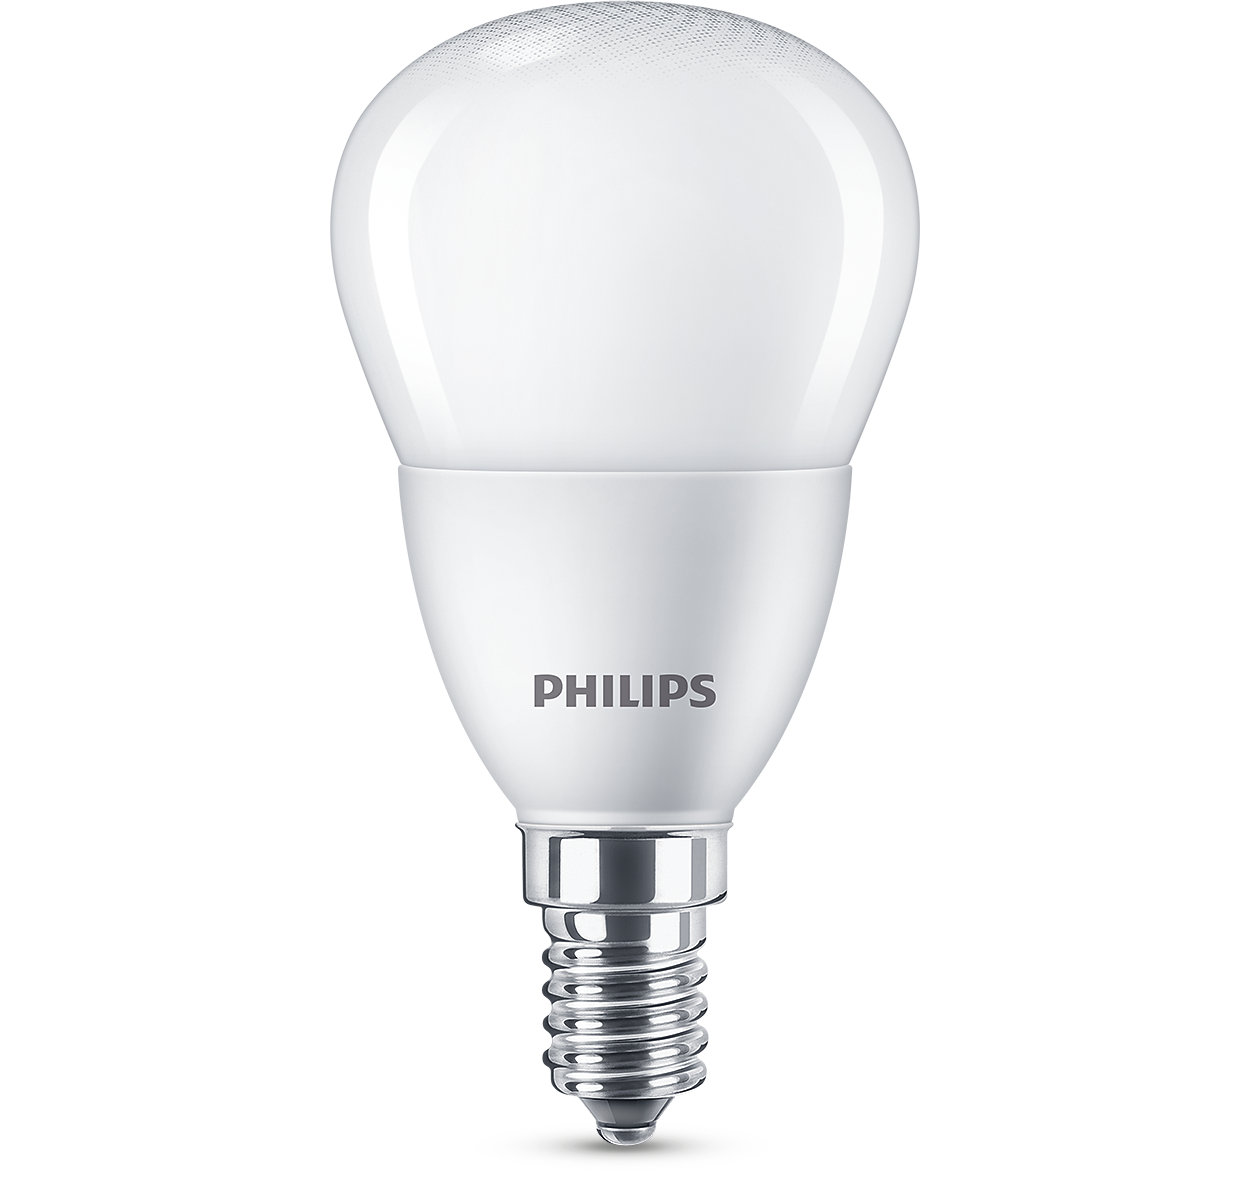 Beautify your home with Philips LED globe bulbs